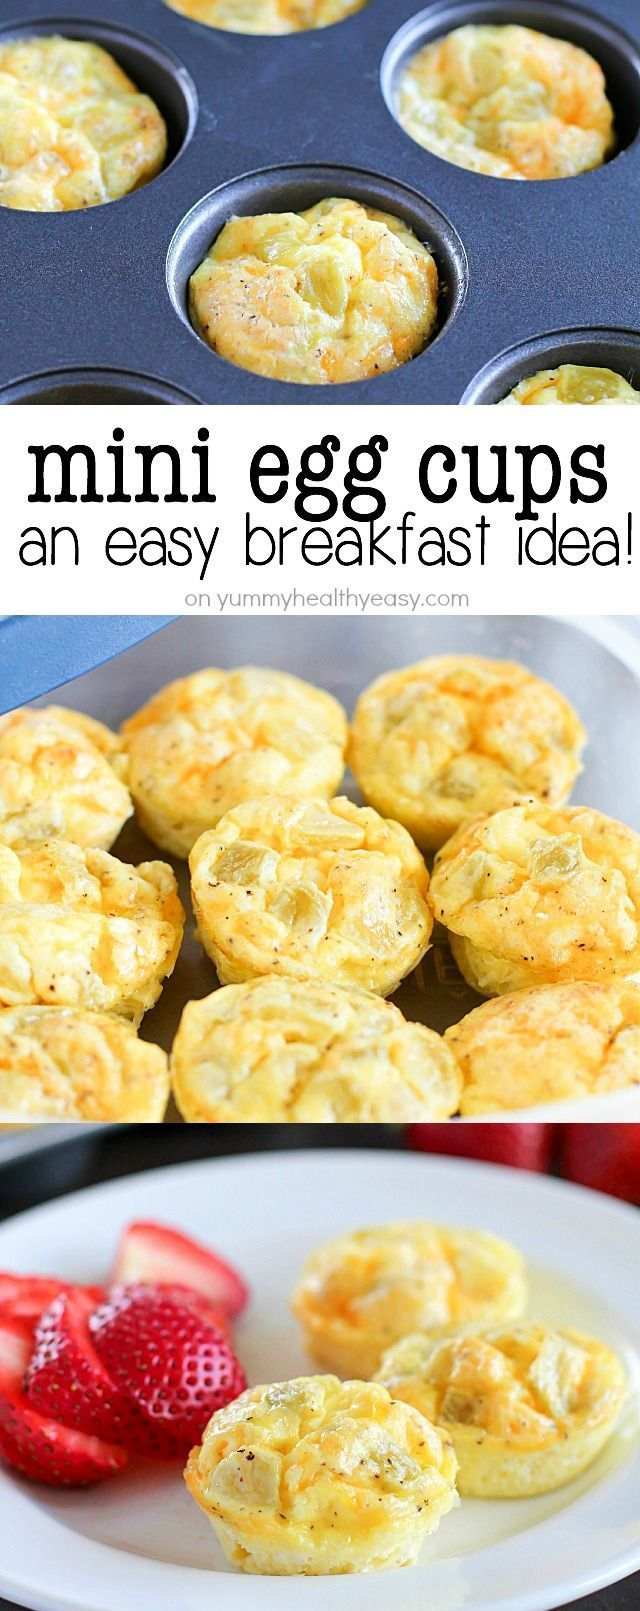 Extremely simple and delicious healthy mini egg cups! A quick breakfast recipe you can make ahead of time and devour all week long!